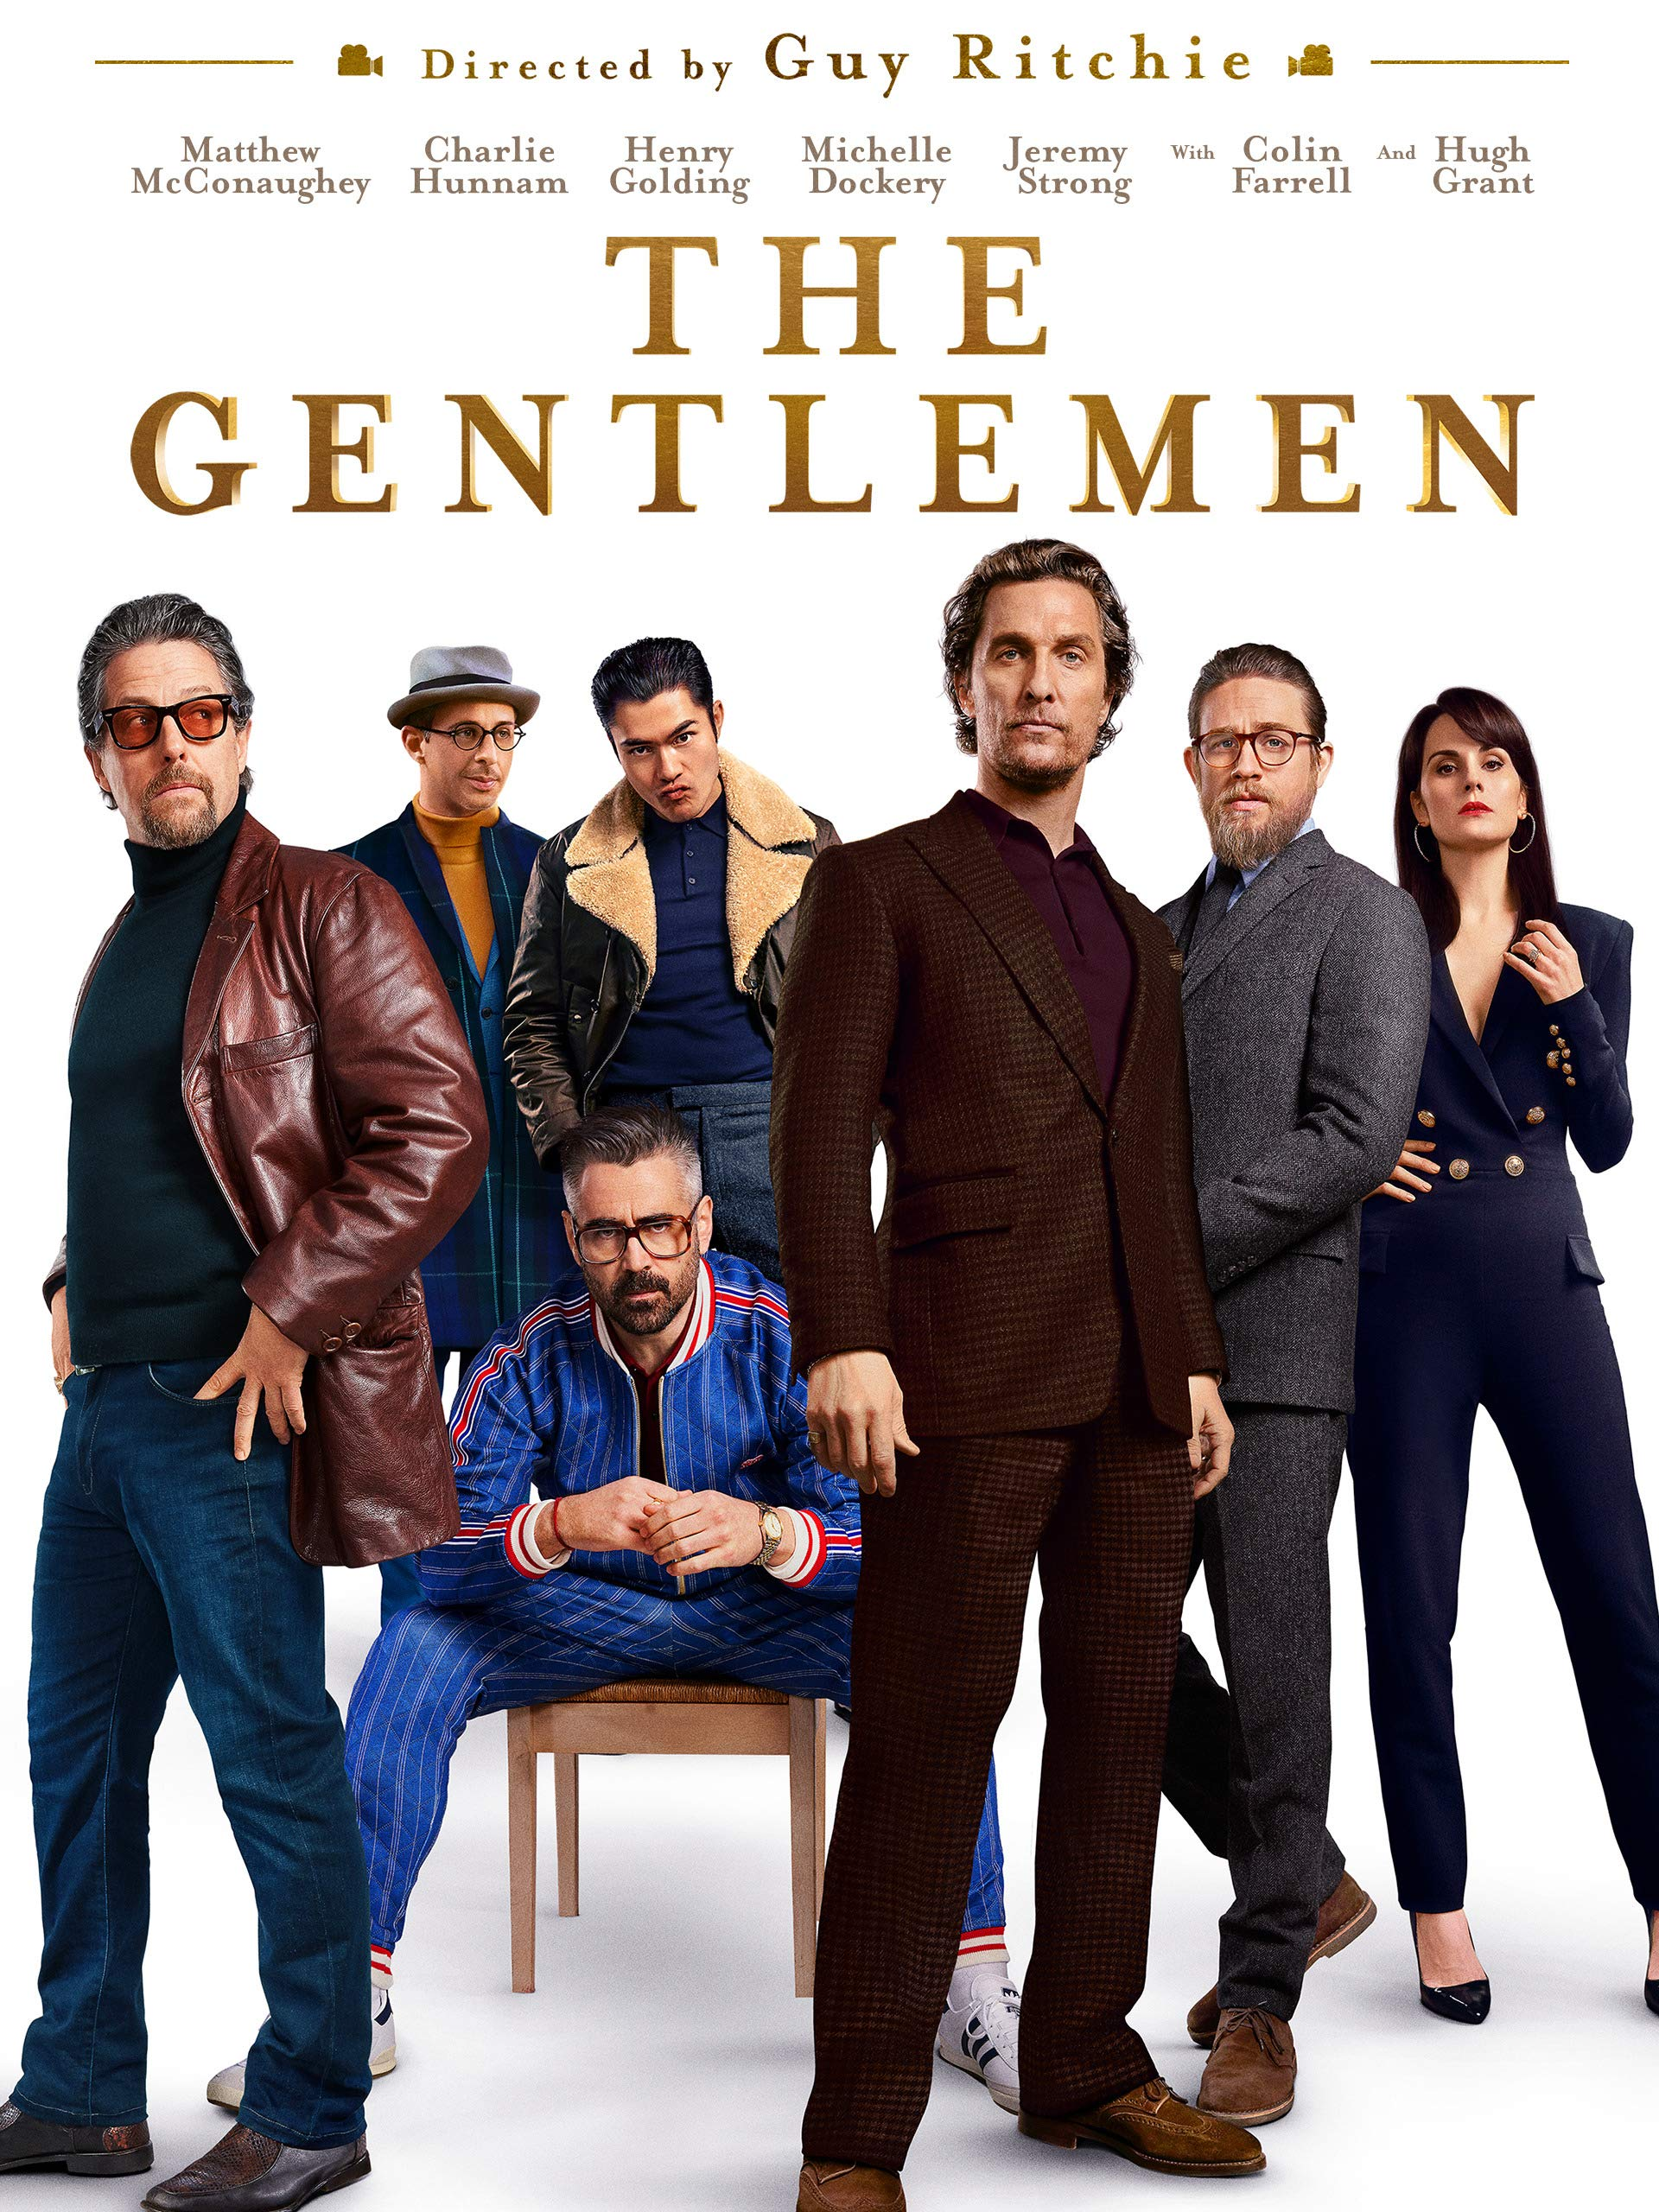 Win A Copy Of The Gentleman On Blu-ray - Life of Dad - A Worldwide  Community of Dads